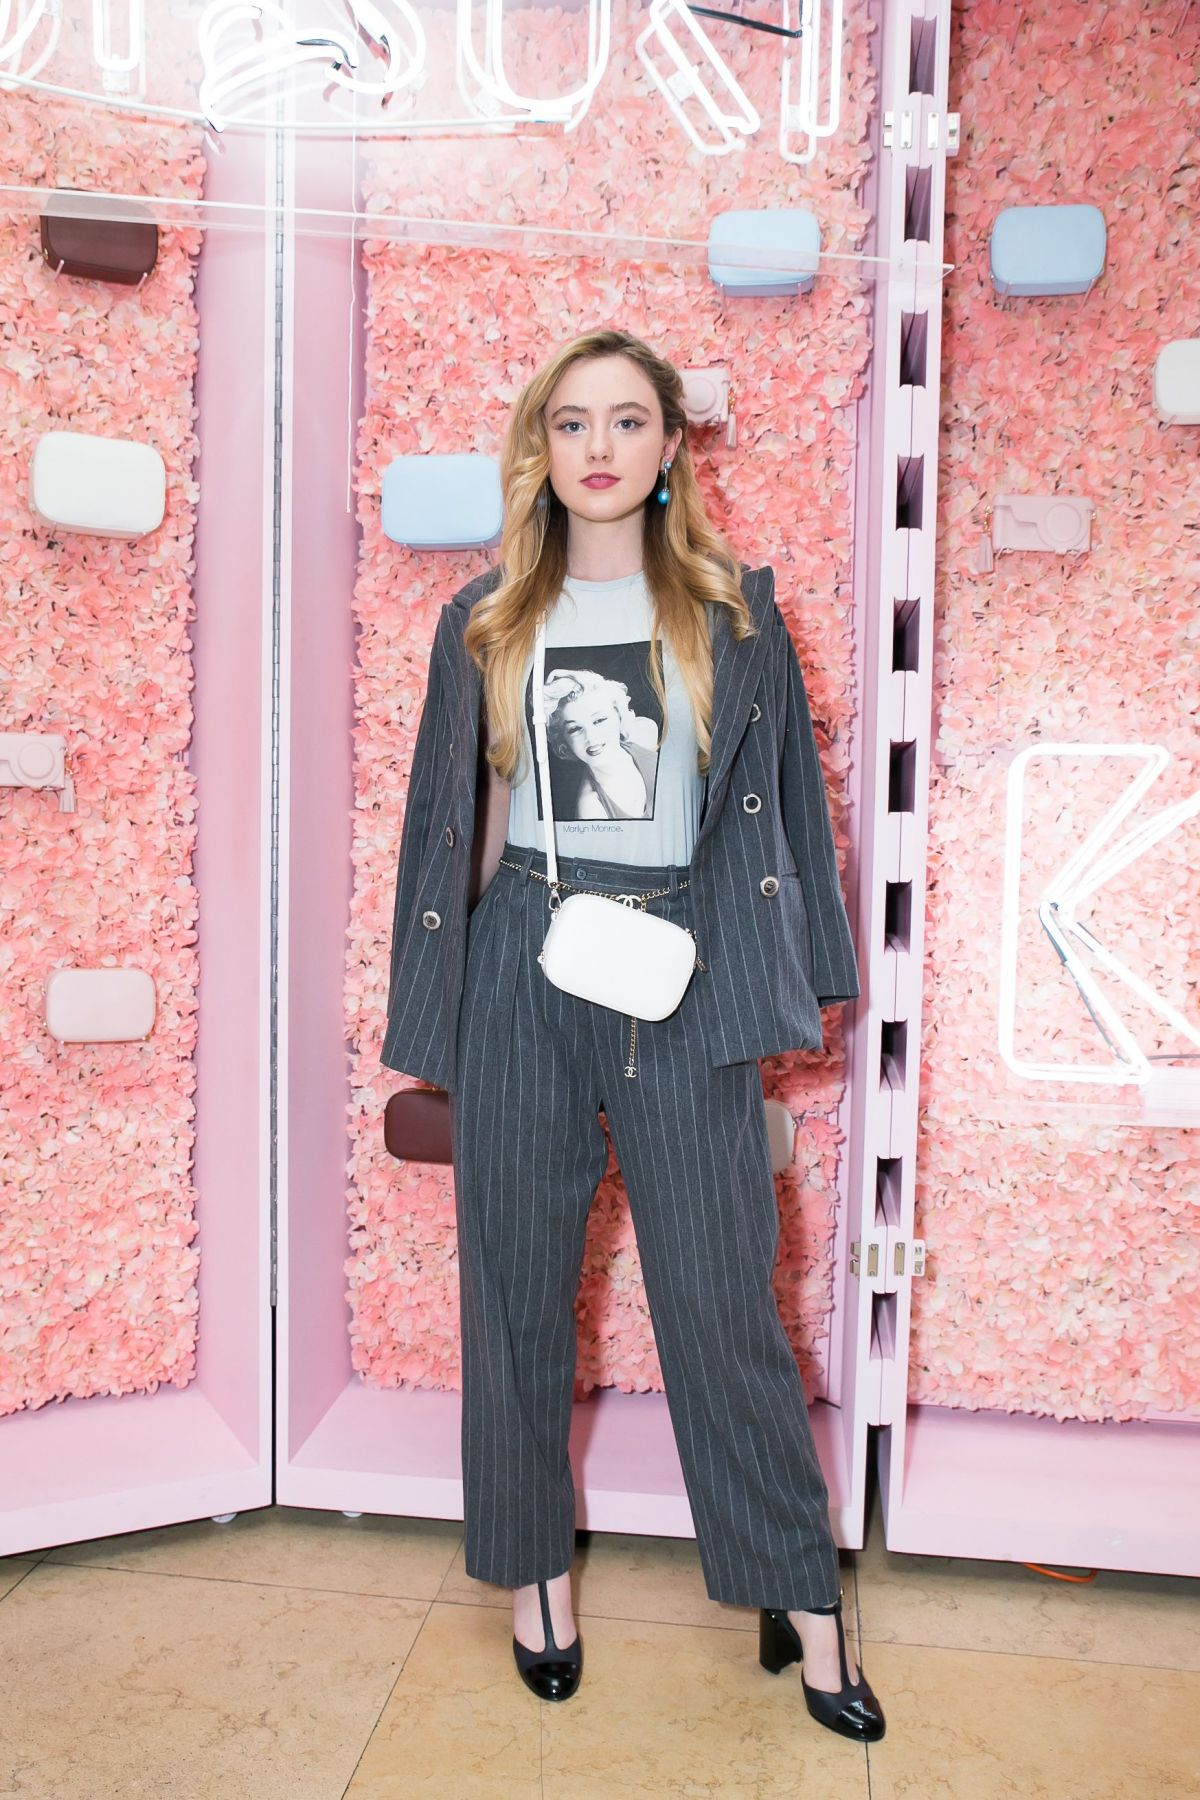 KATHRYN NEWTON at Pop & Suki Collection 2 Party in Los Angeles 04/19/2017   kathryn-newton-at-pop-suki-collection-2-party-in-los-angeles-04-19-2017_2